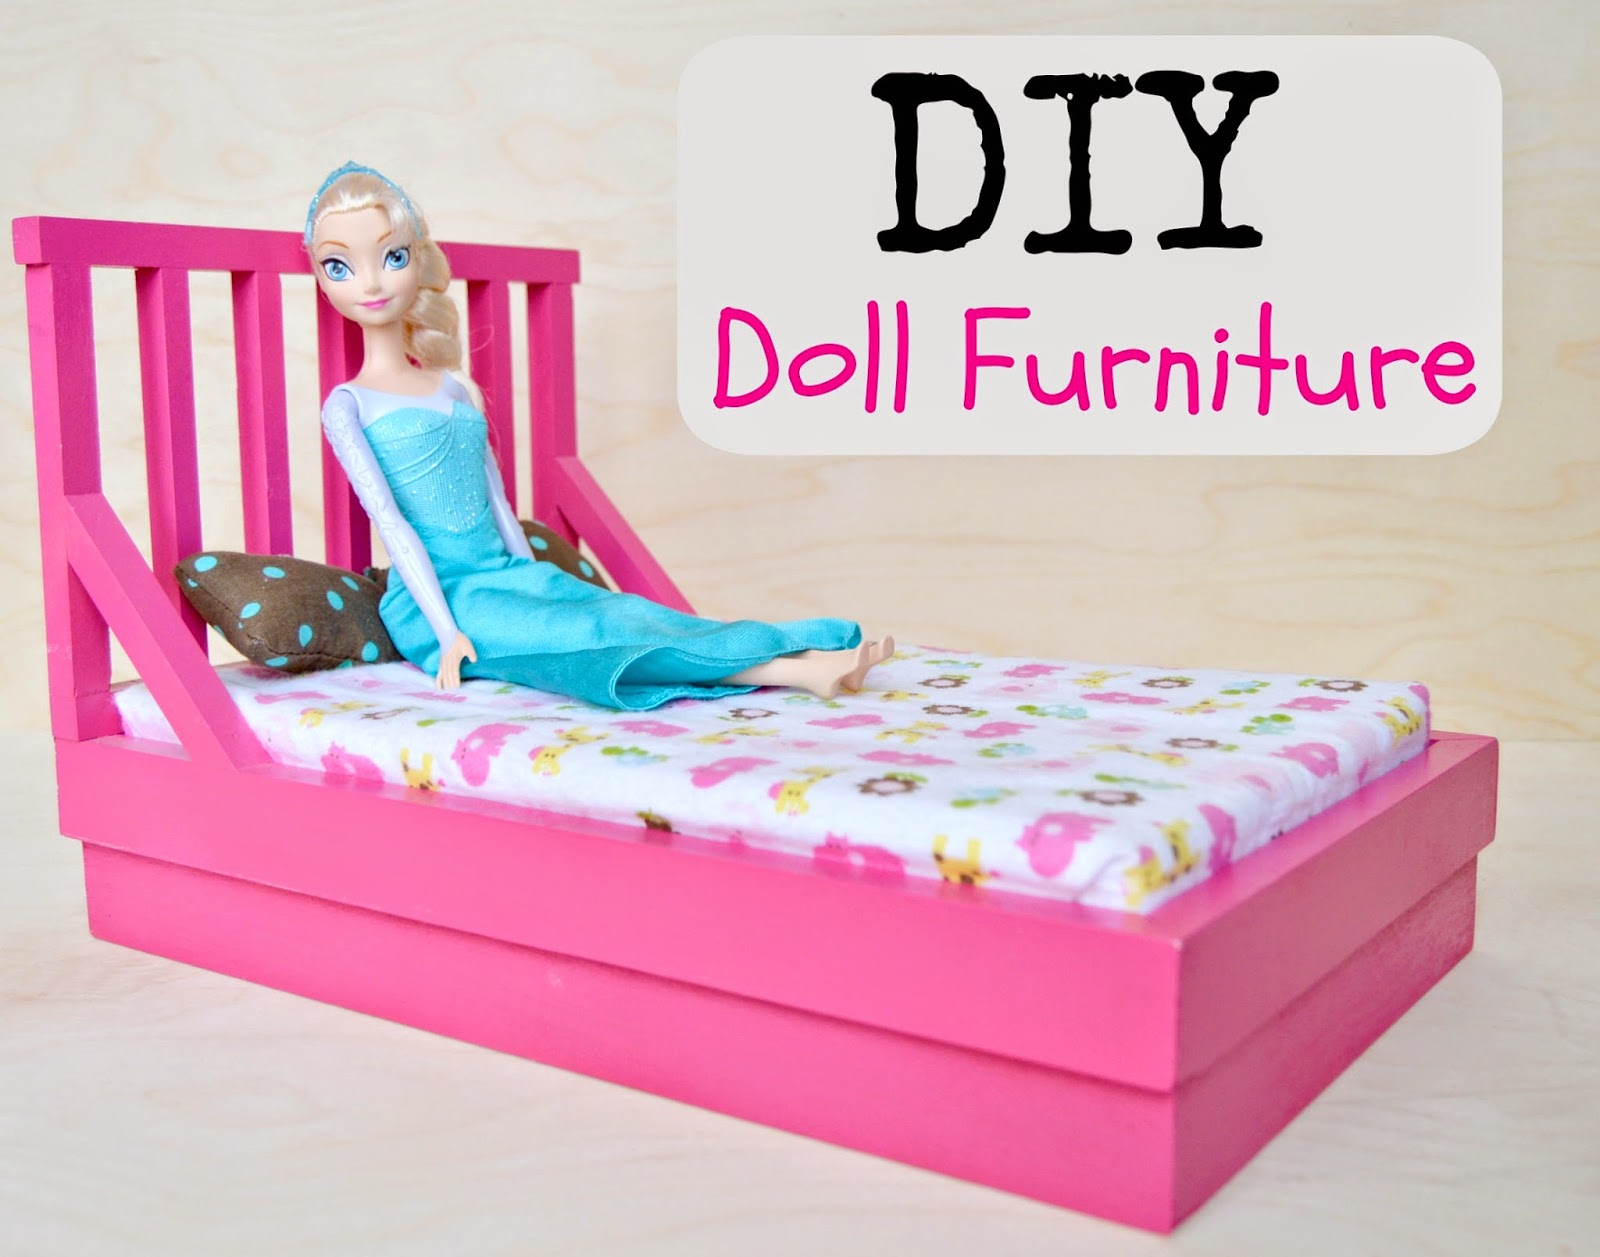 KRUSES WORKSHOP DIY Dollhouse Furniture